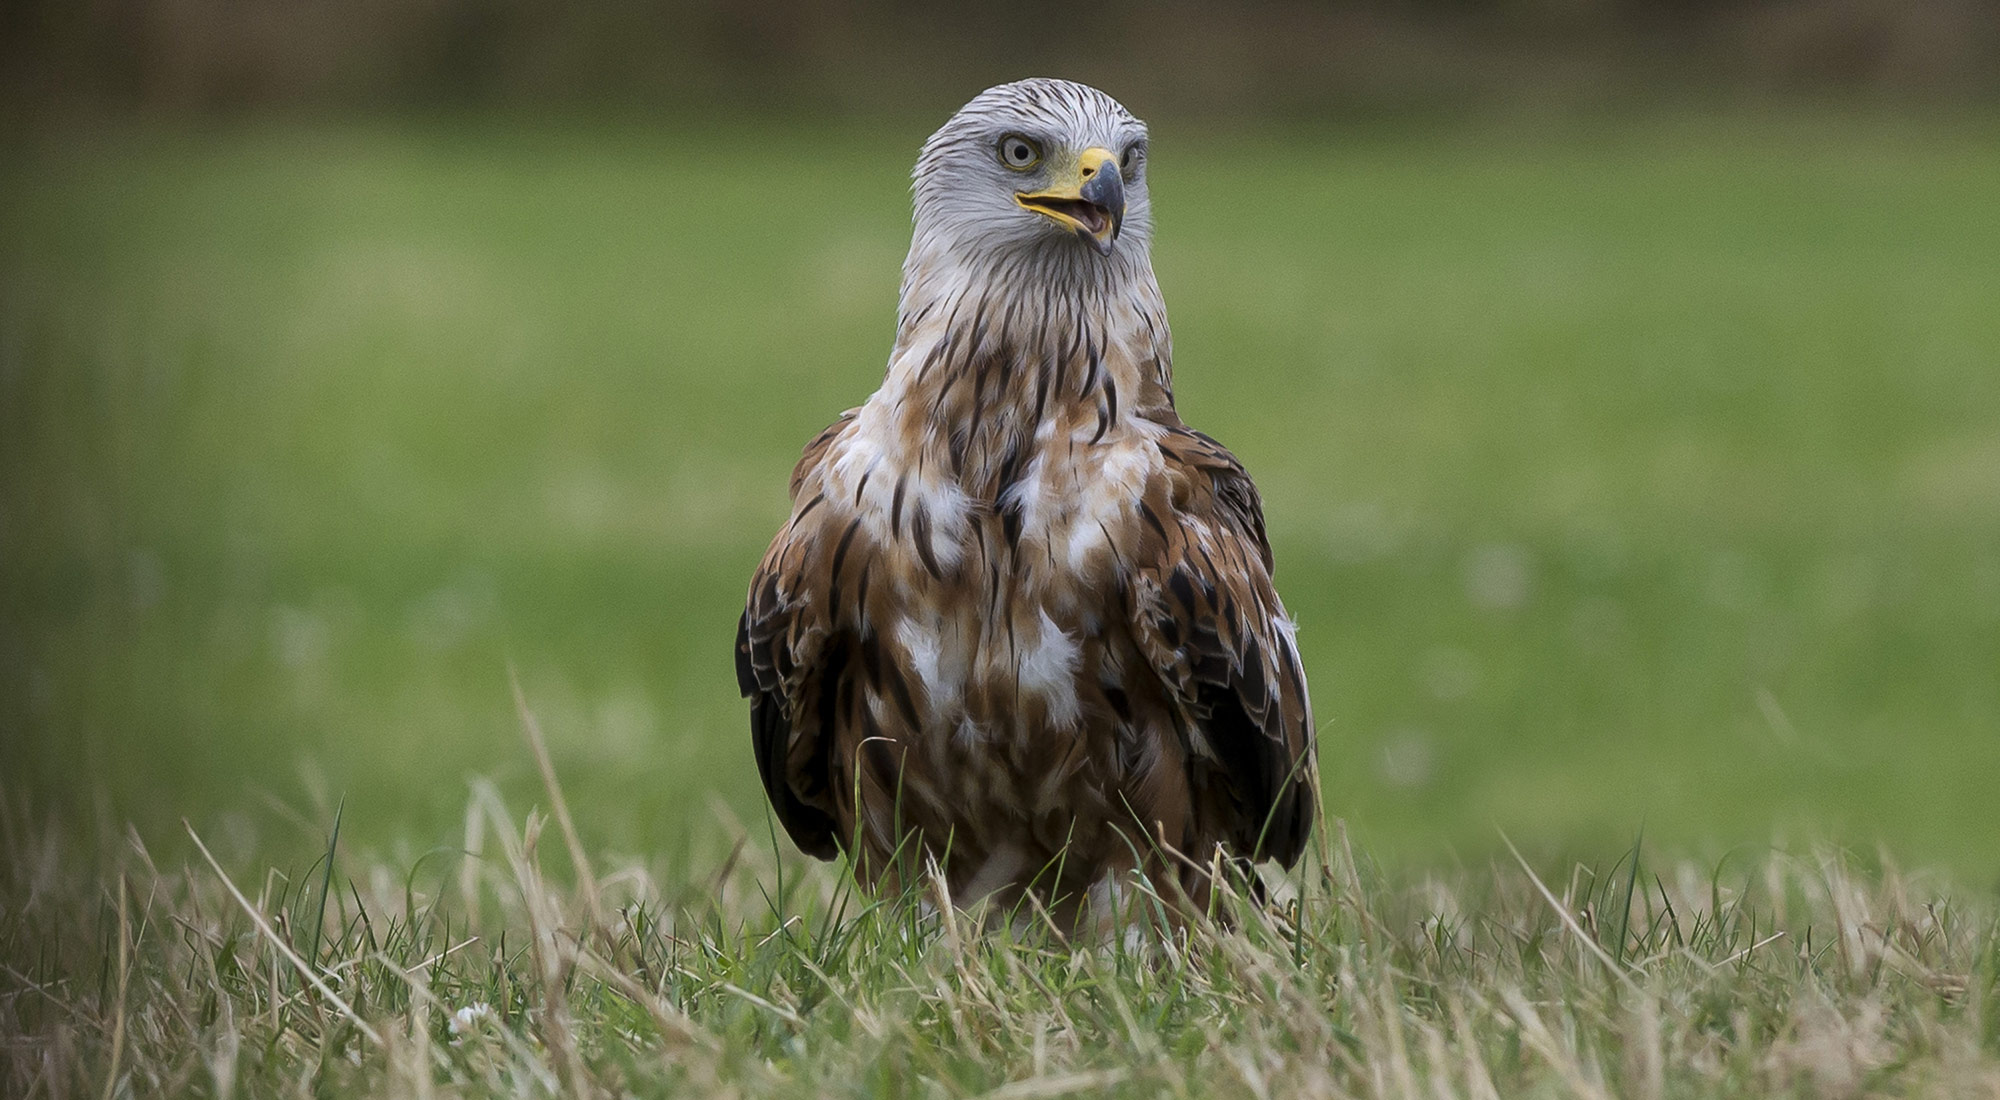 Wildlife Photography Hides Hide photography Bourne Lincolnshire fighting juveniles bird of prey red kite carrion green grass talons tom robinson